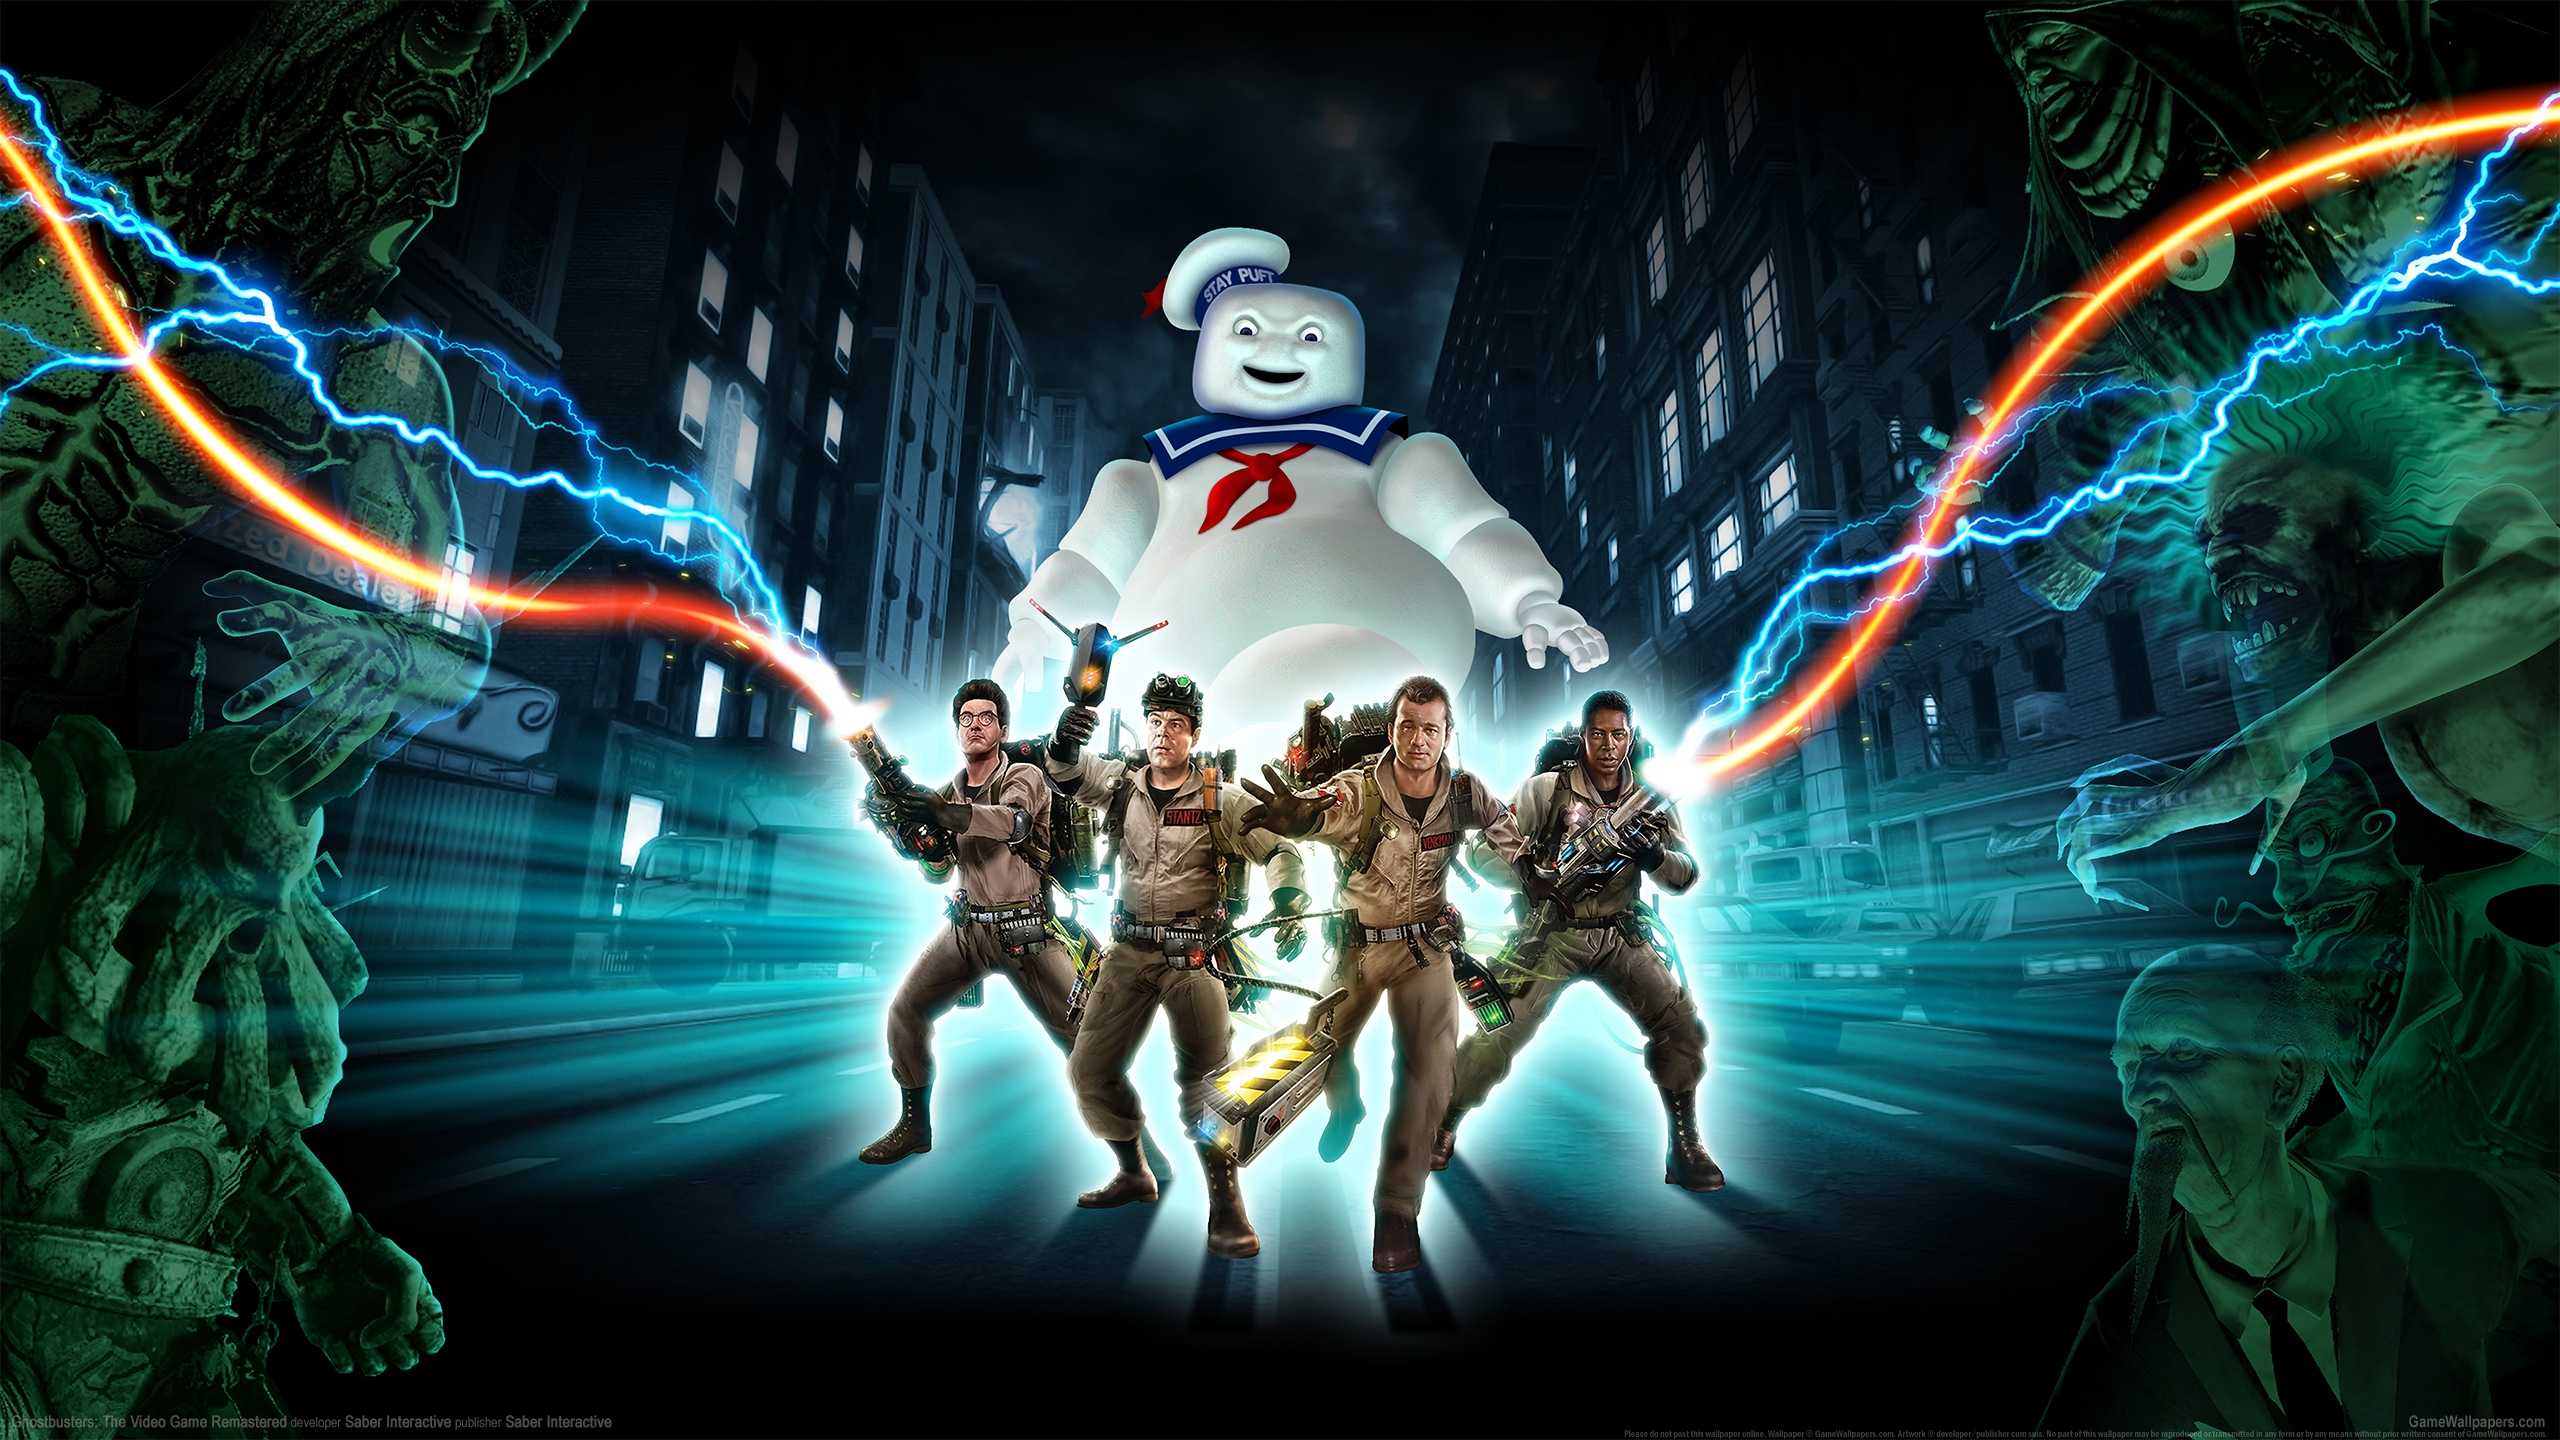 Ghostbusters: The Video Game Remastered 2560x1440 wallpaper or background 01